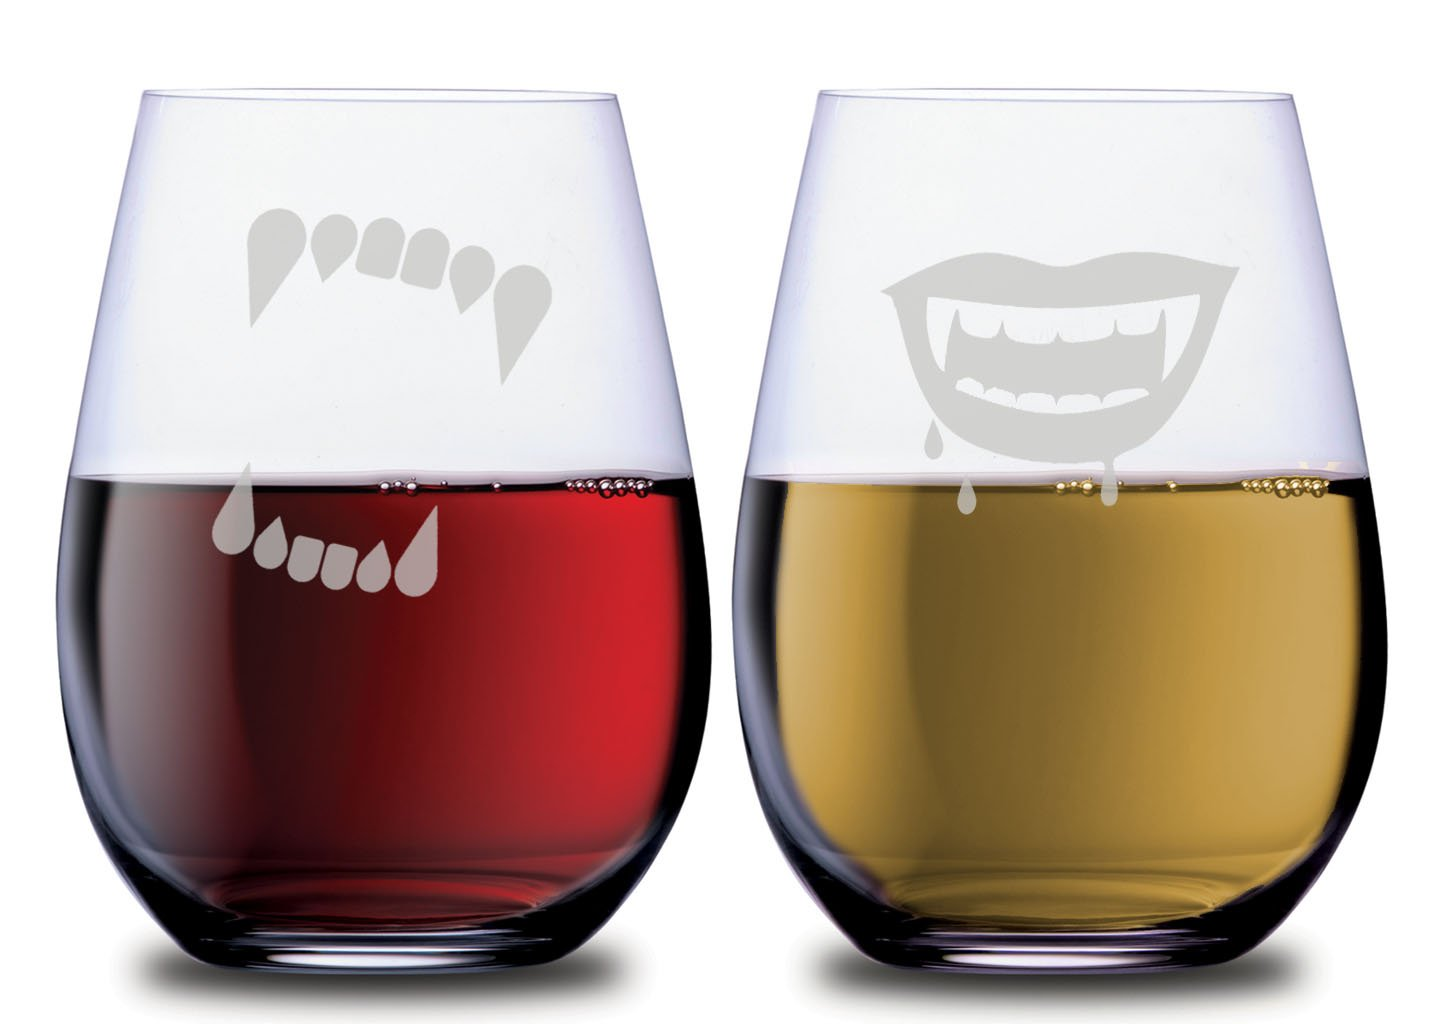 Supernatural Teeth Stemless Couples Wine Glasses Set of 2 with Vampire and Werewolf Teeth Funny Dishwasher Safe,18oz, by Smoochies | Couples, Anniversary, Home Date Night, Wife and Husband Gift Ideas